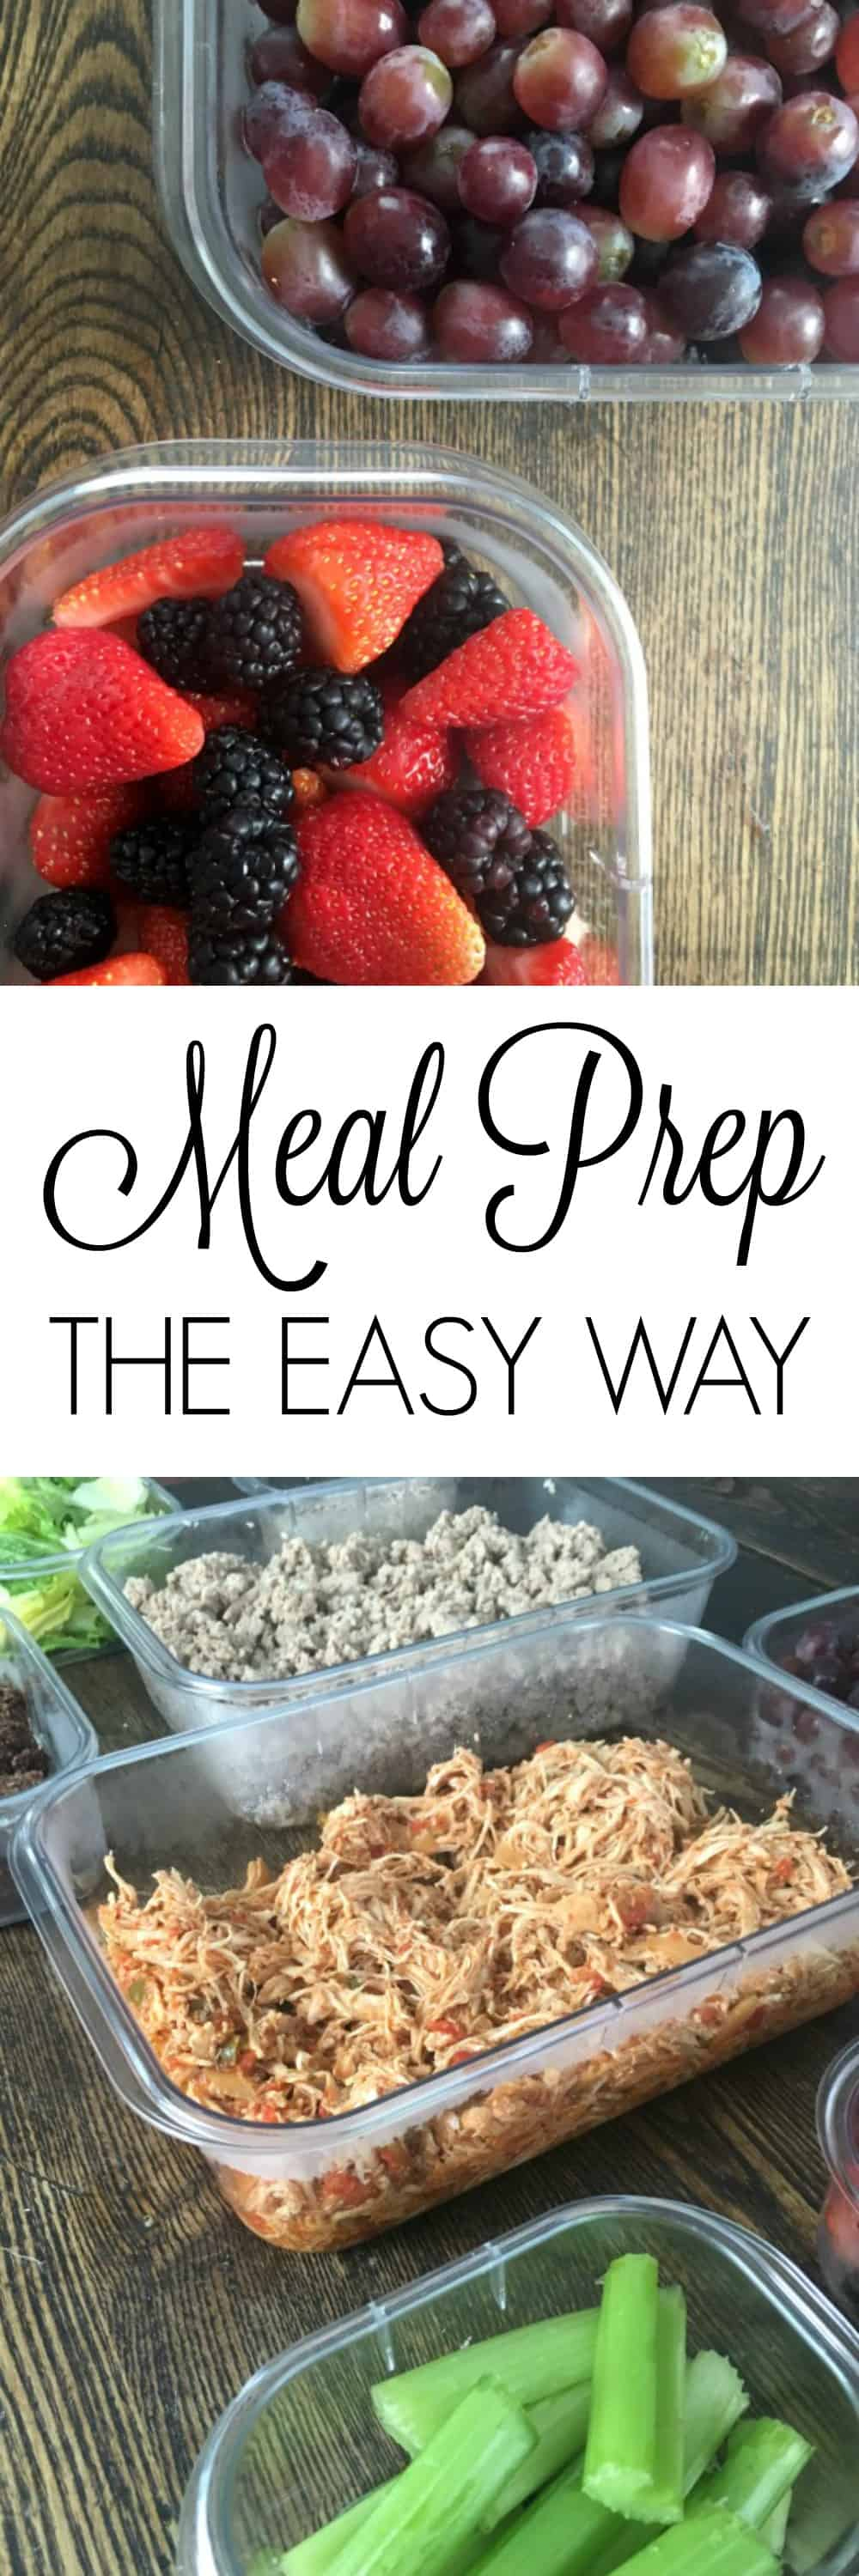 Meal prep - meal prep easy - meal prep help - meal prep how to -